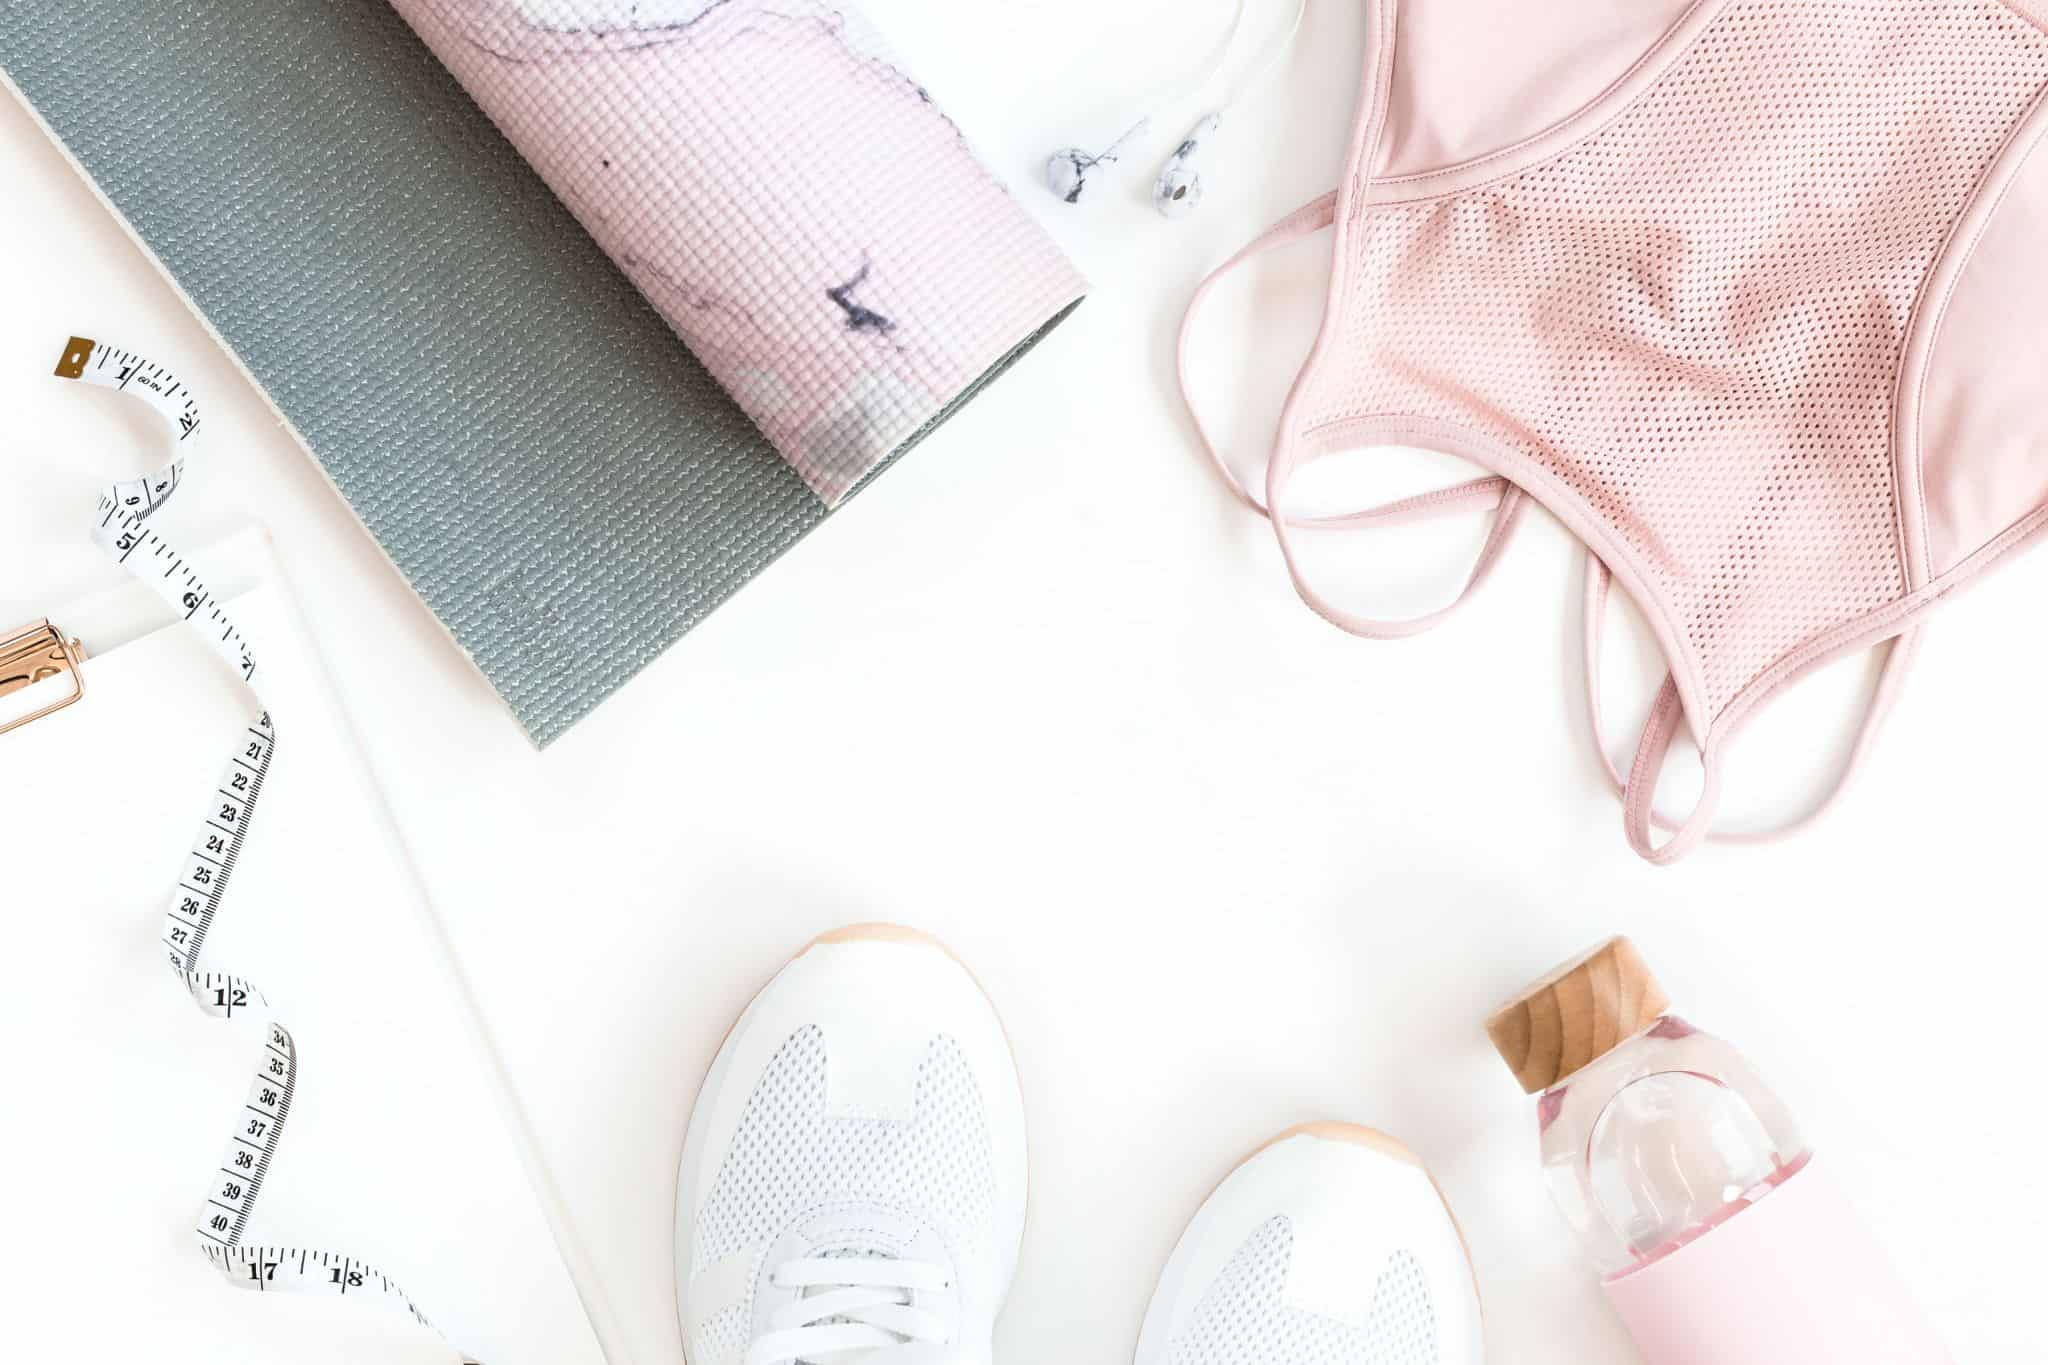 Lifestyle Changes - Lace and Sparkles